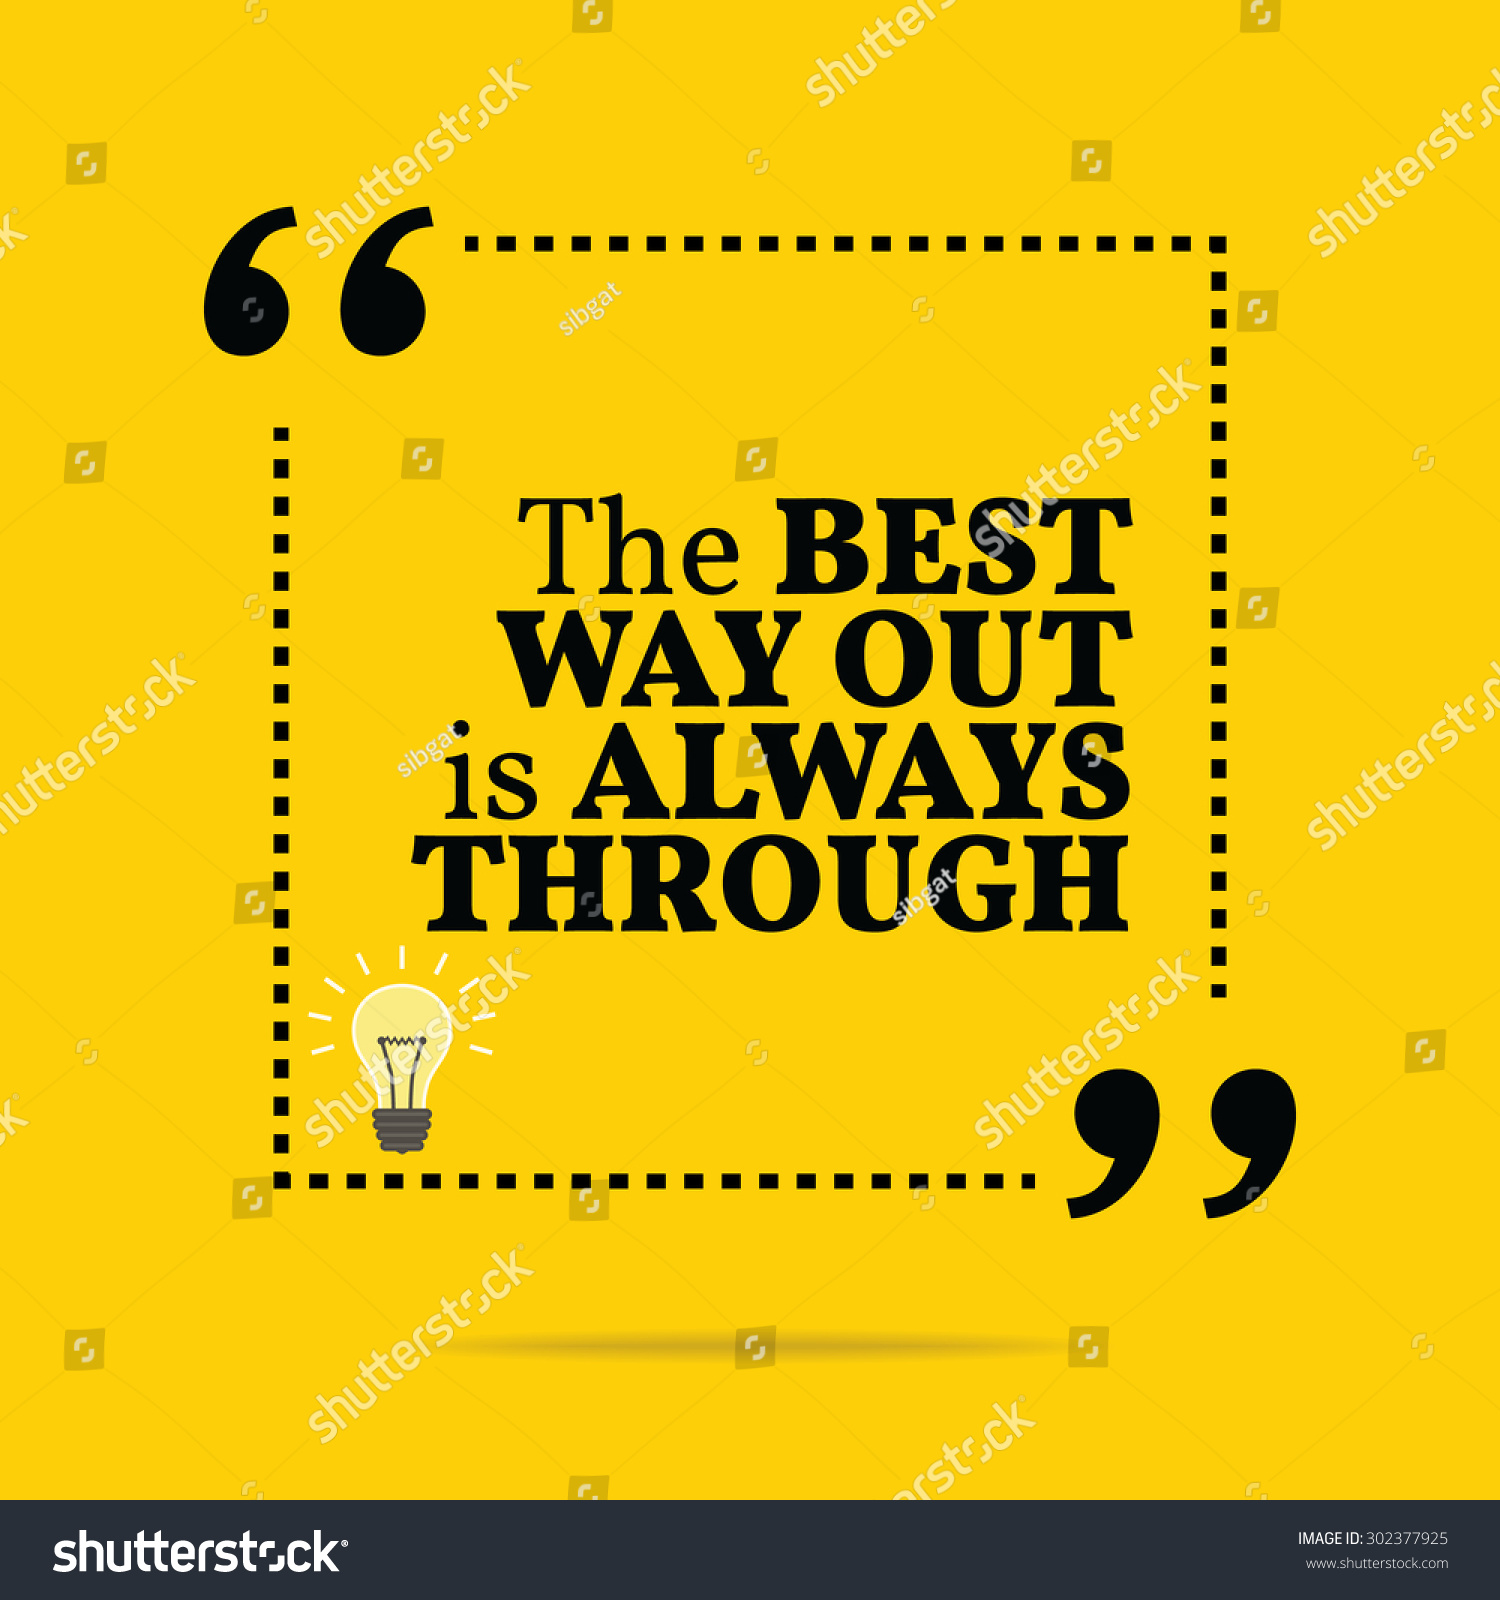 Simple Typography Spells Out A Powerful Motivation For: Inspirational Motivational Quote. The Best Way Out Is